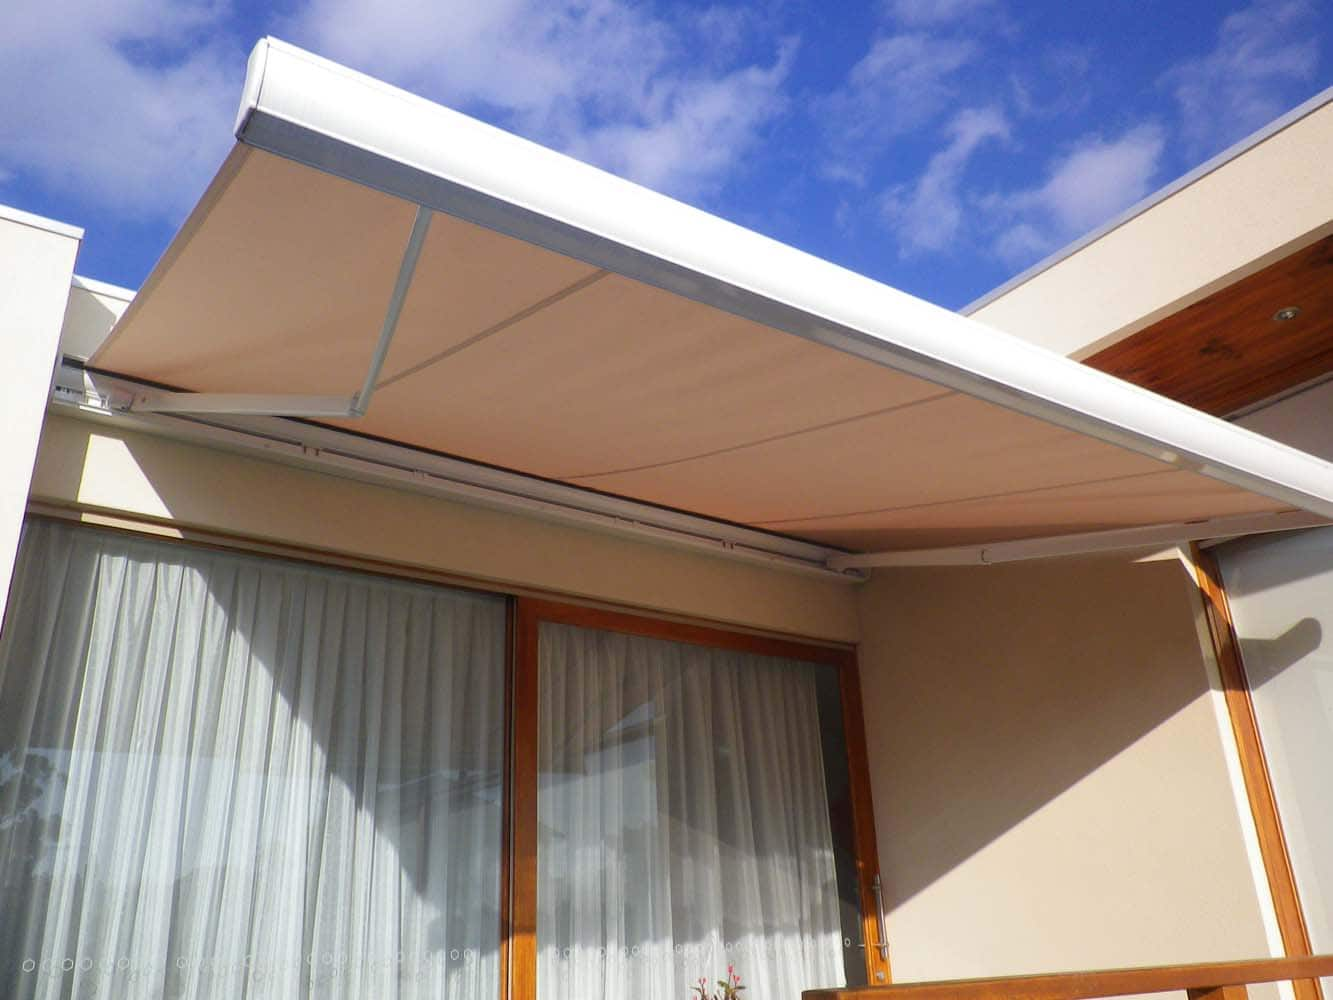 RETRACTABLE AWNING (6)